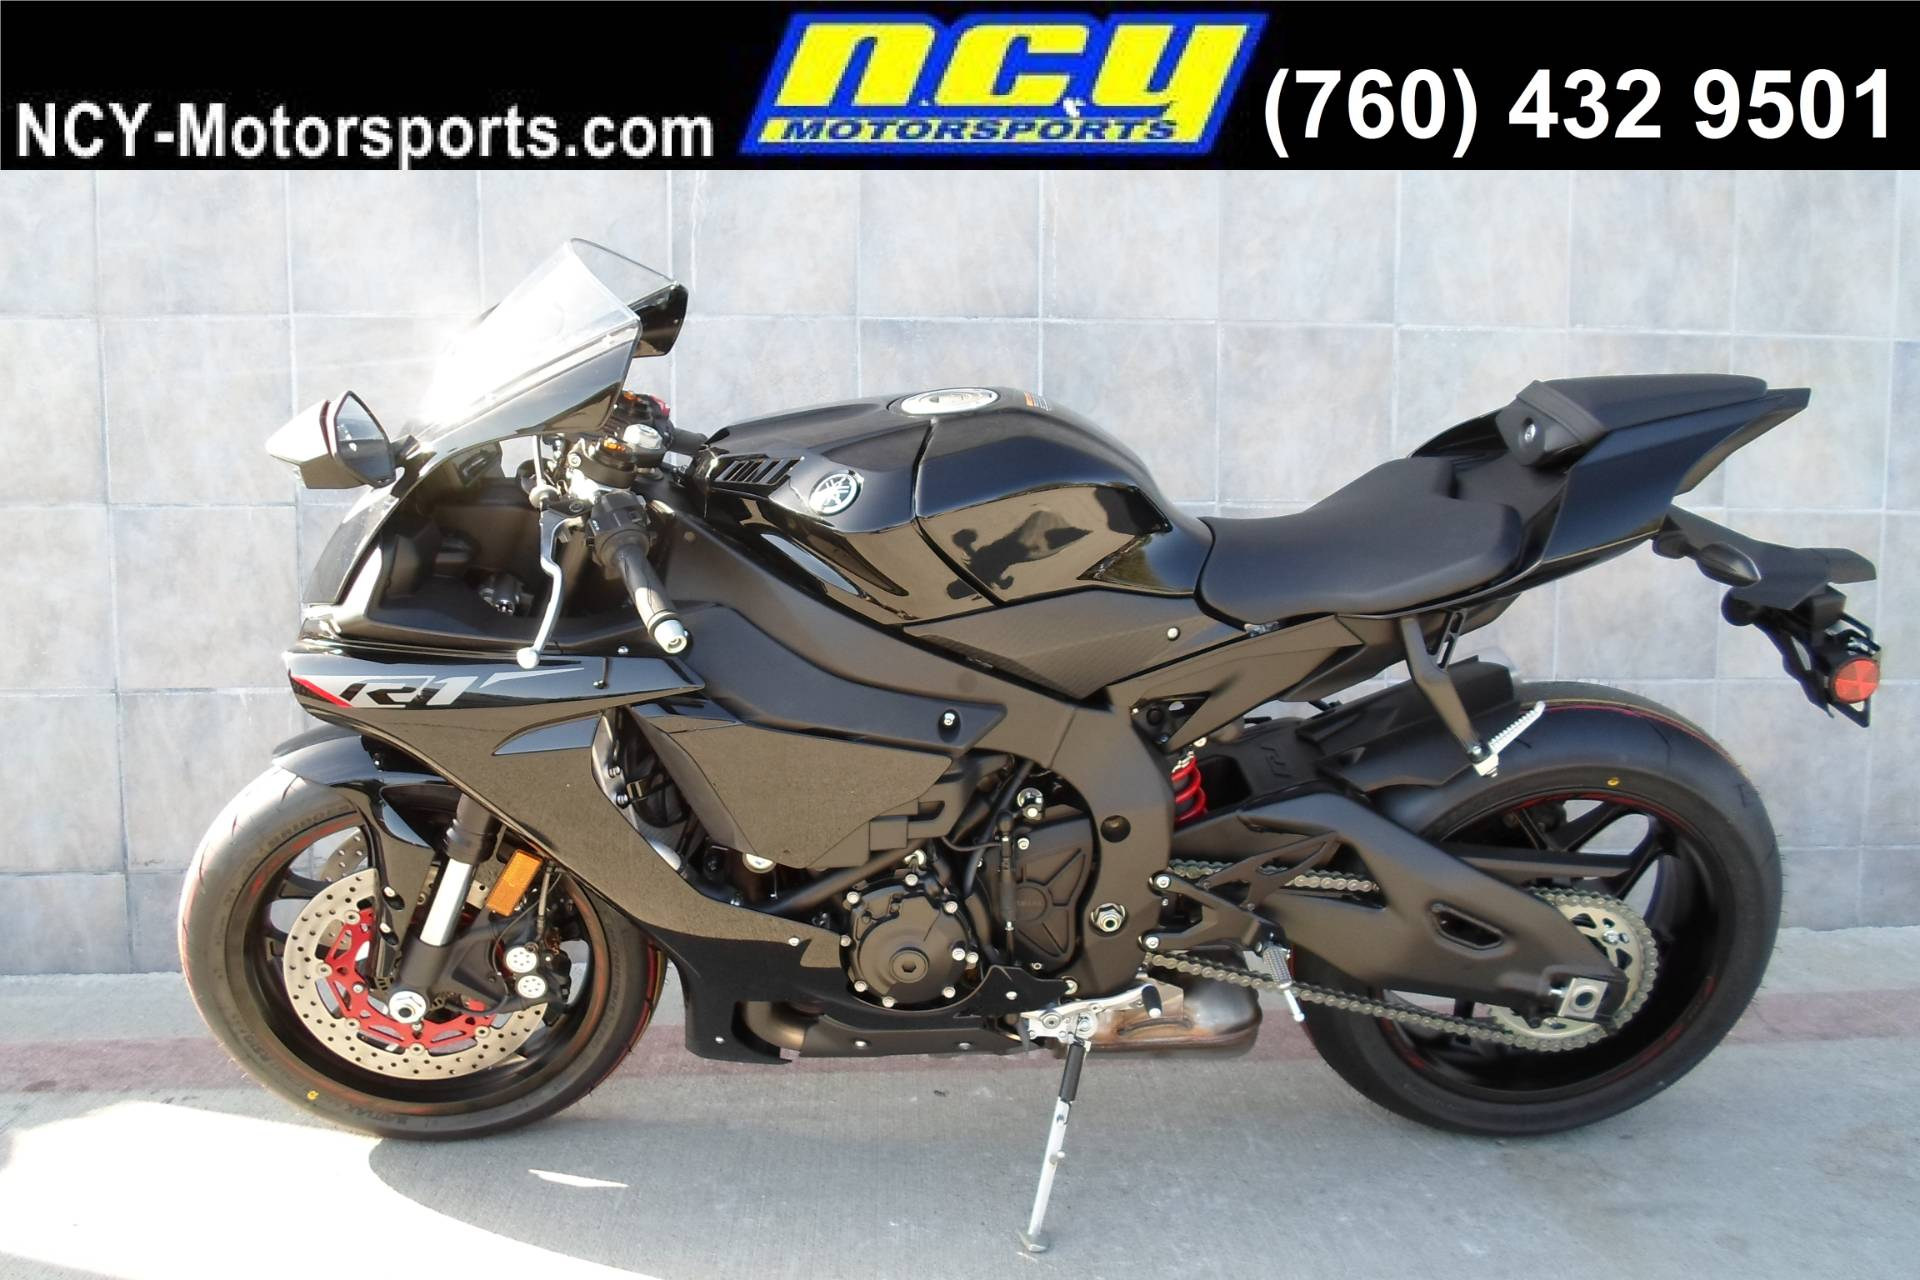 New Motorcycles For Sale San Marcos Ca >> New 2018 Yamaha YZF-R1 Motorcycles in San Marcos, CA